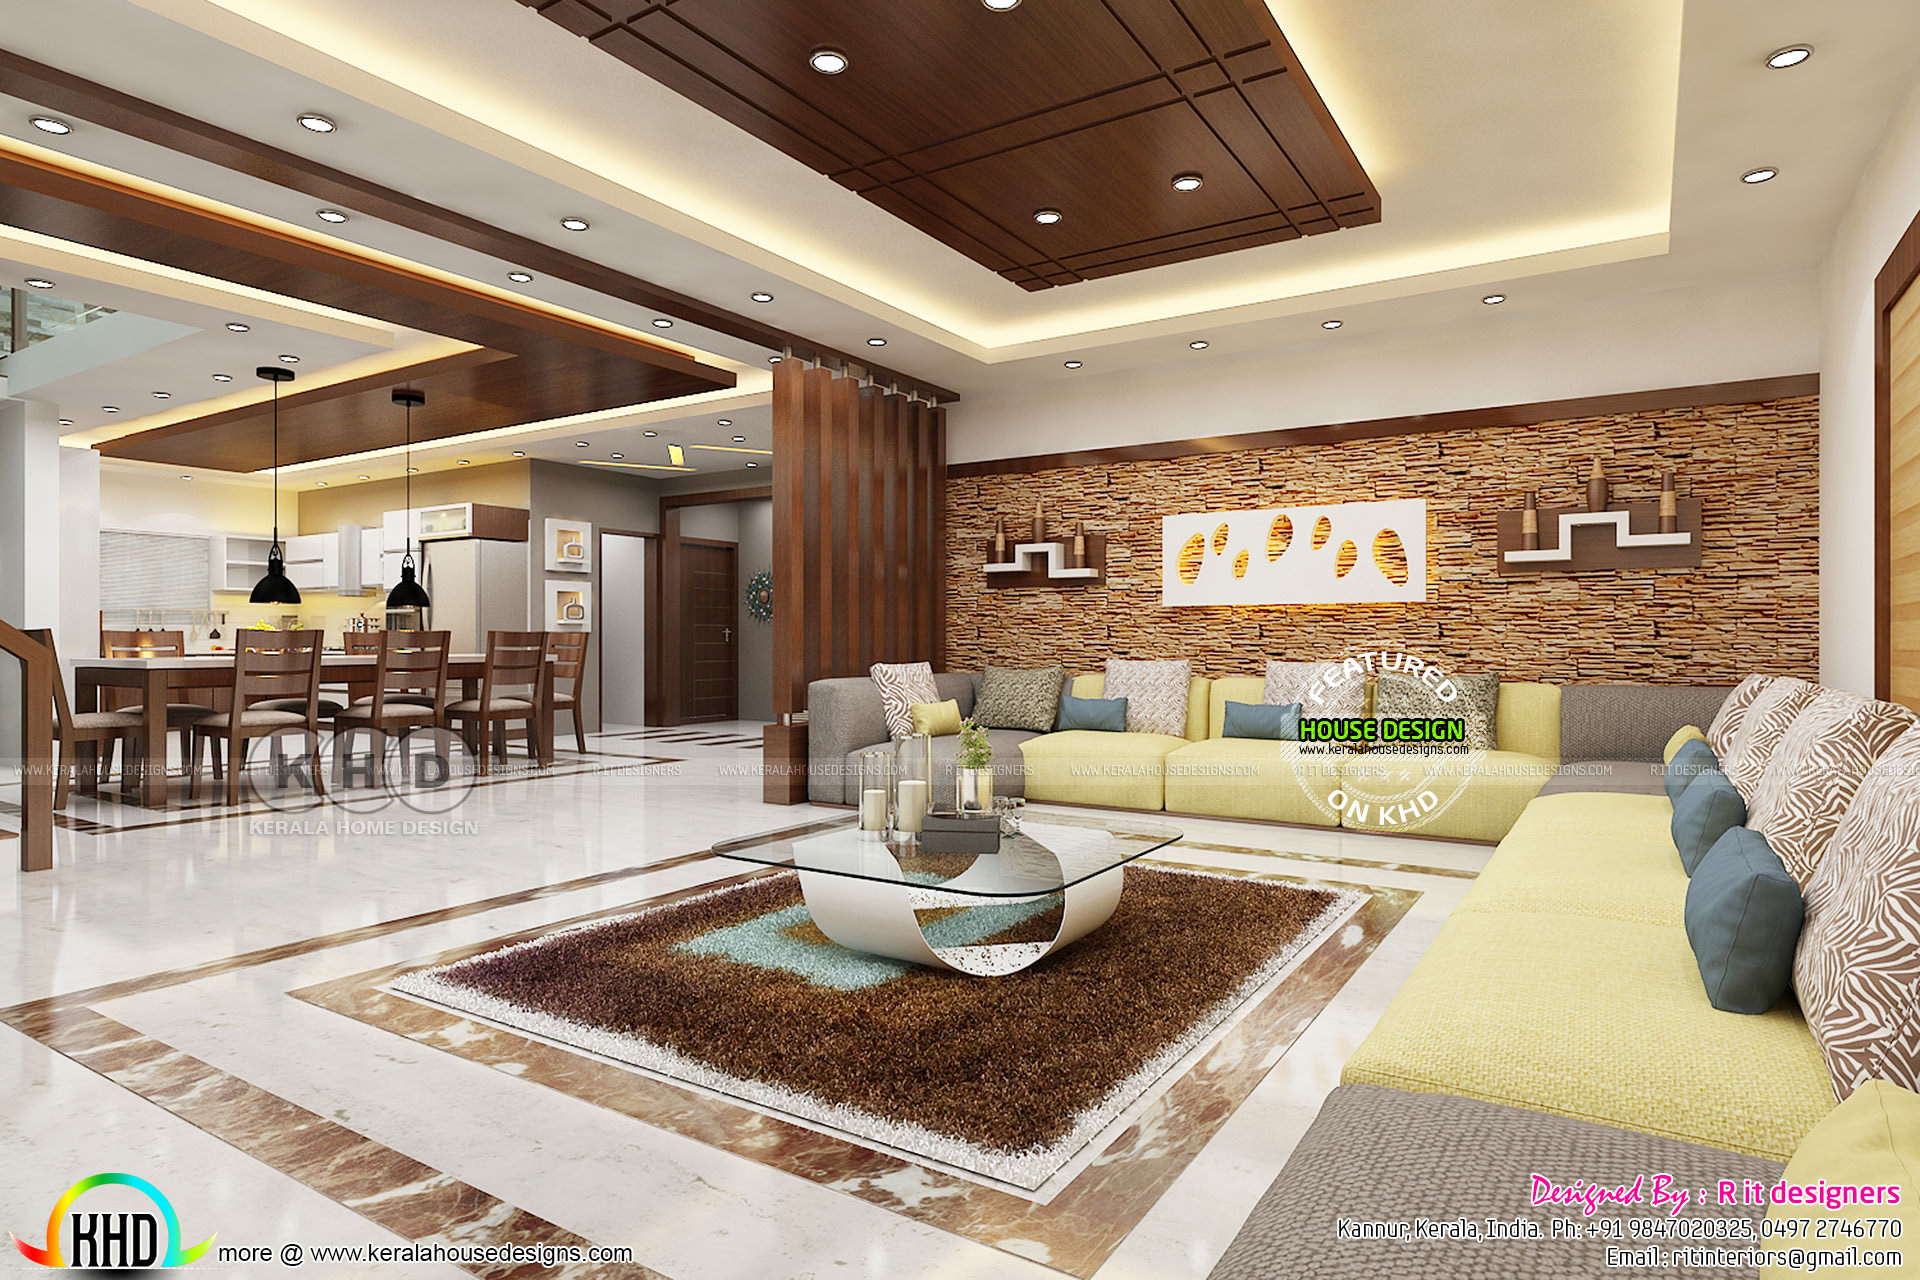 House design and inside interior kerala home design and for Dining room designs india